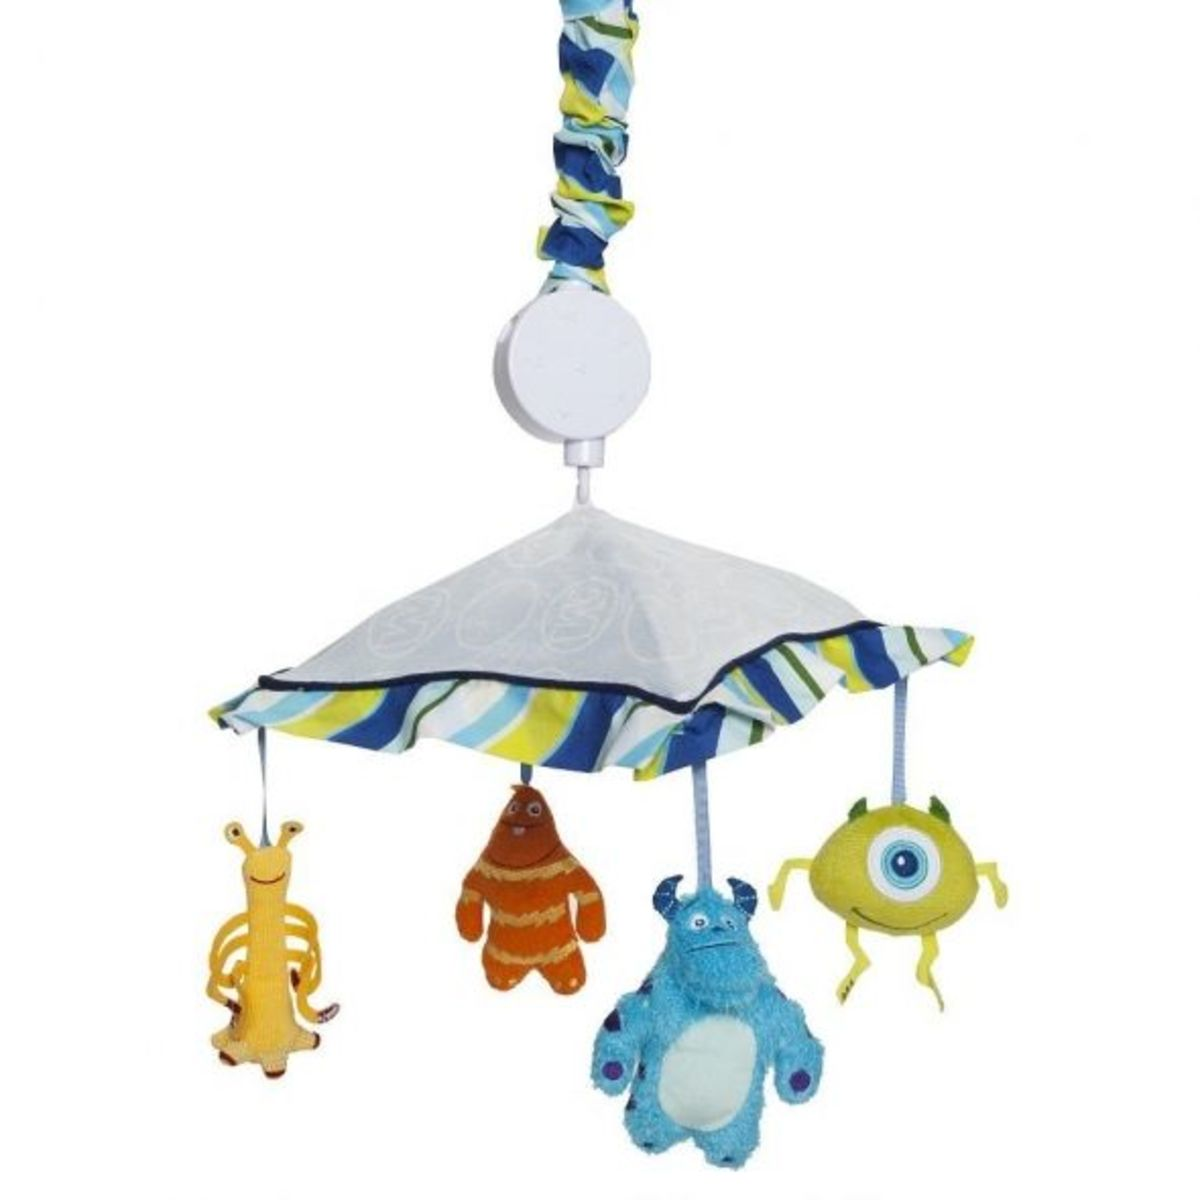 Monsters Inc. Nursery Mobile